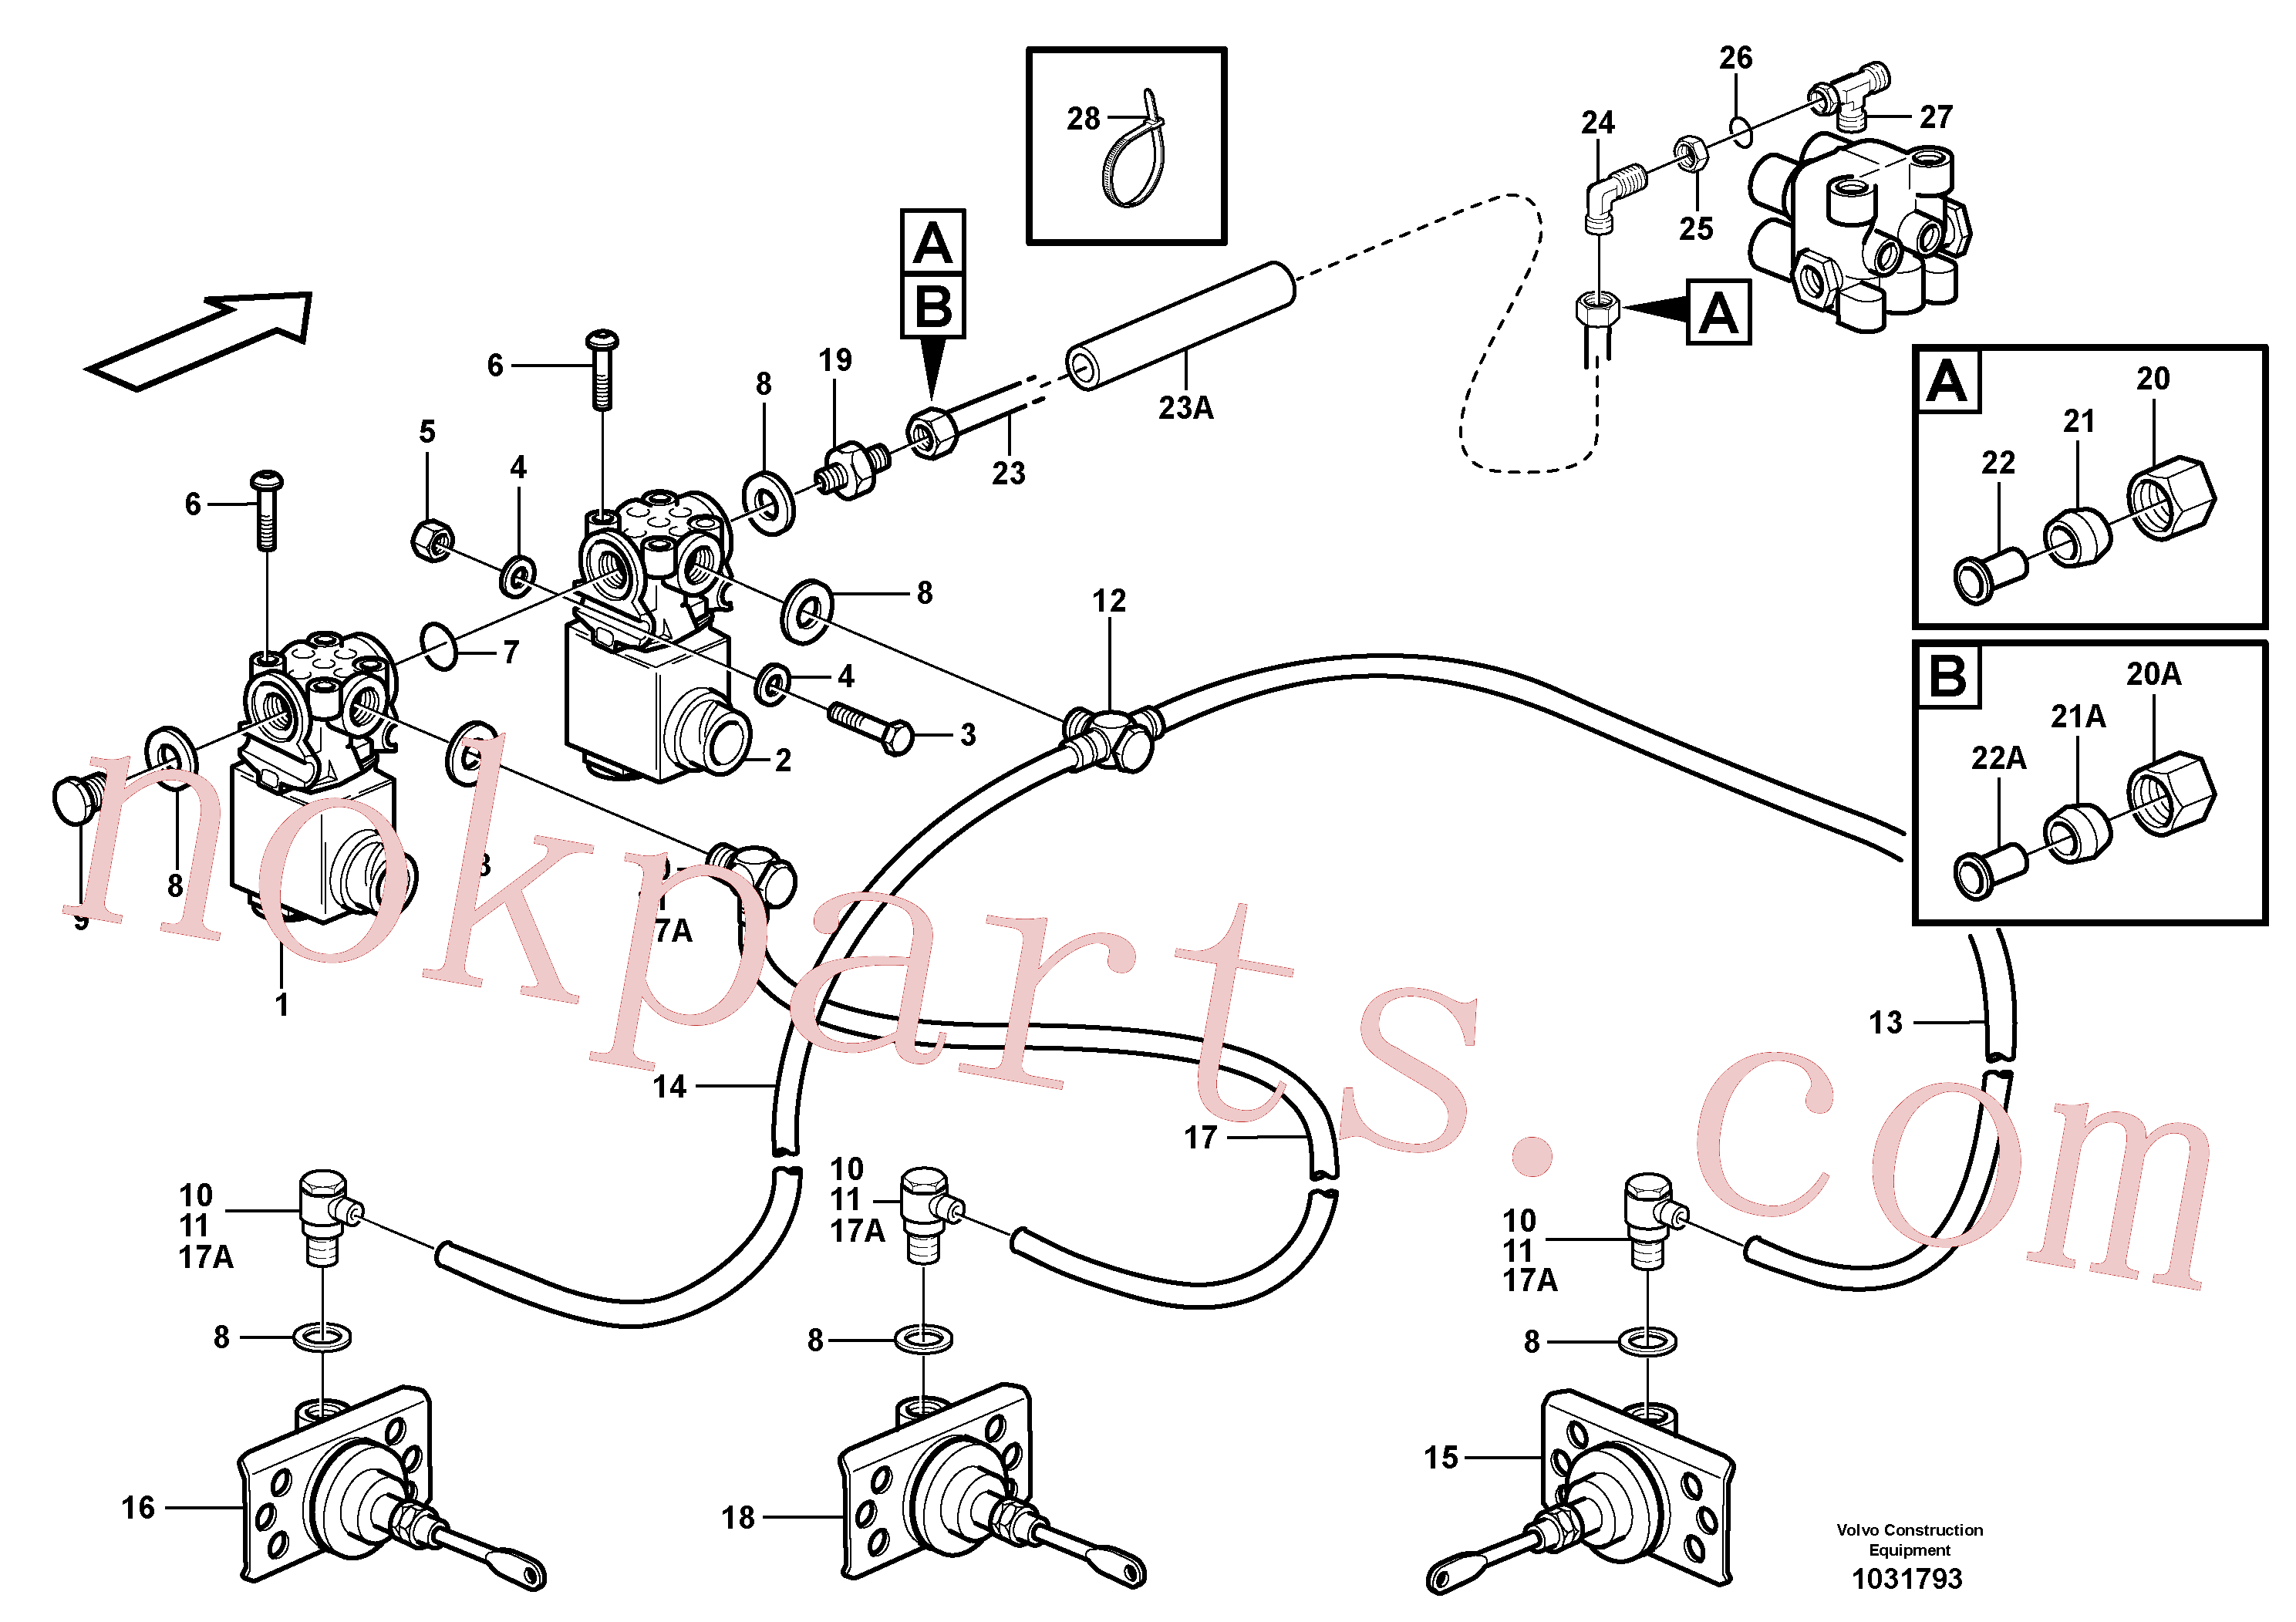 VOE945963 for Volvo Pneumatic system, 6x6 and diff lock, load unit(1031793 assembly)